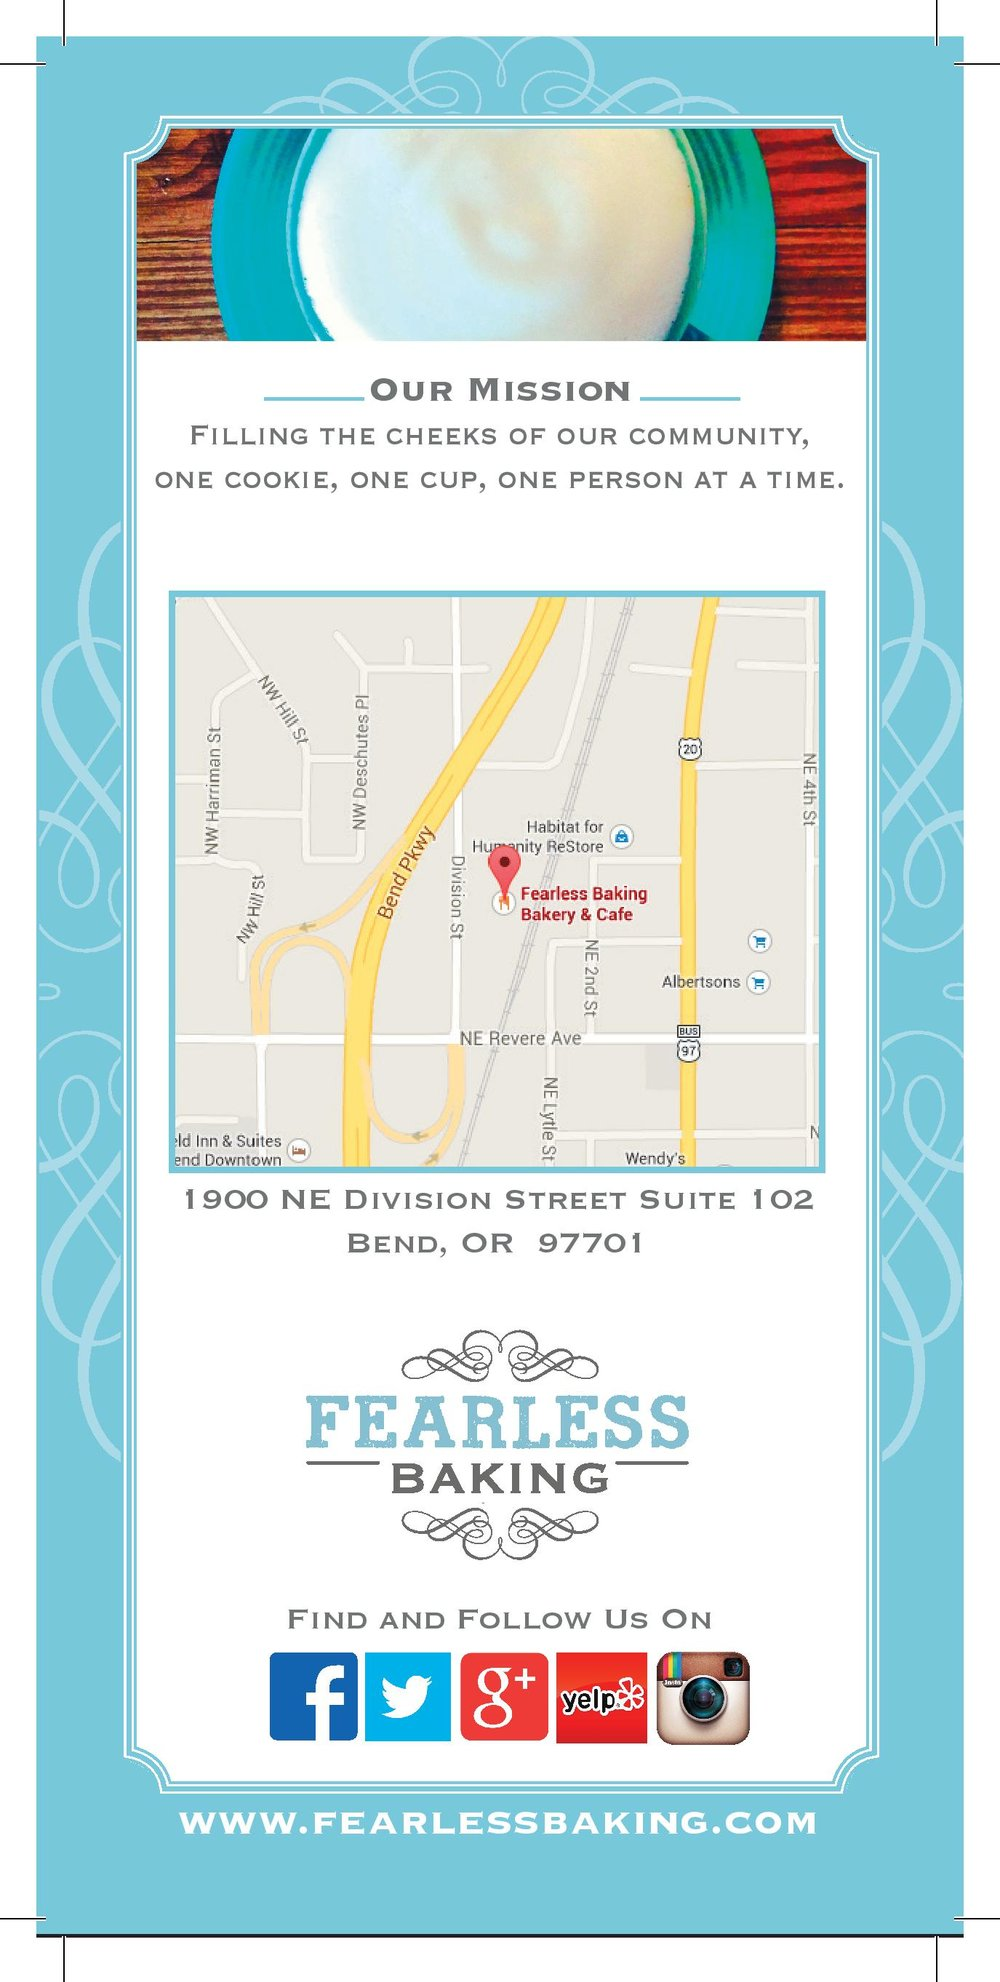 110_Fearless Baking Book Menu-page-008.jpg